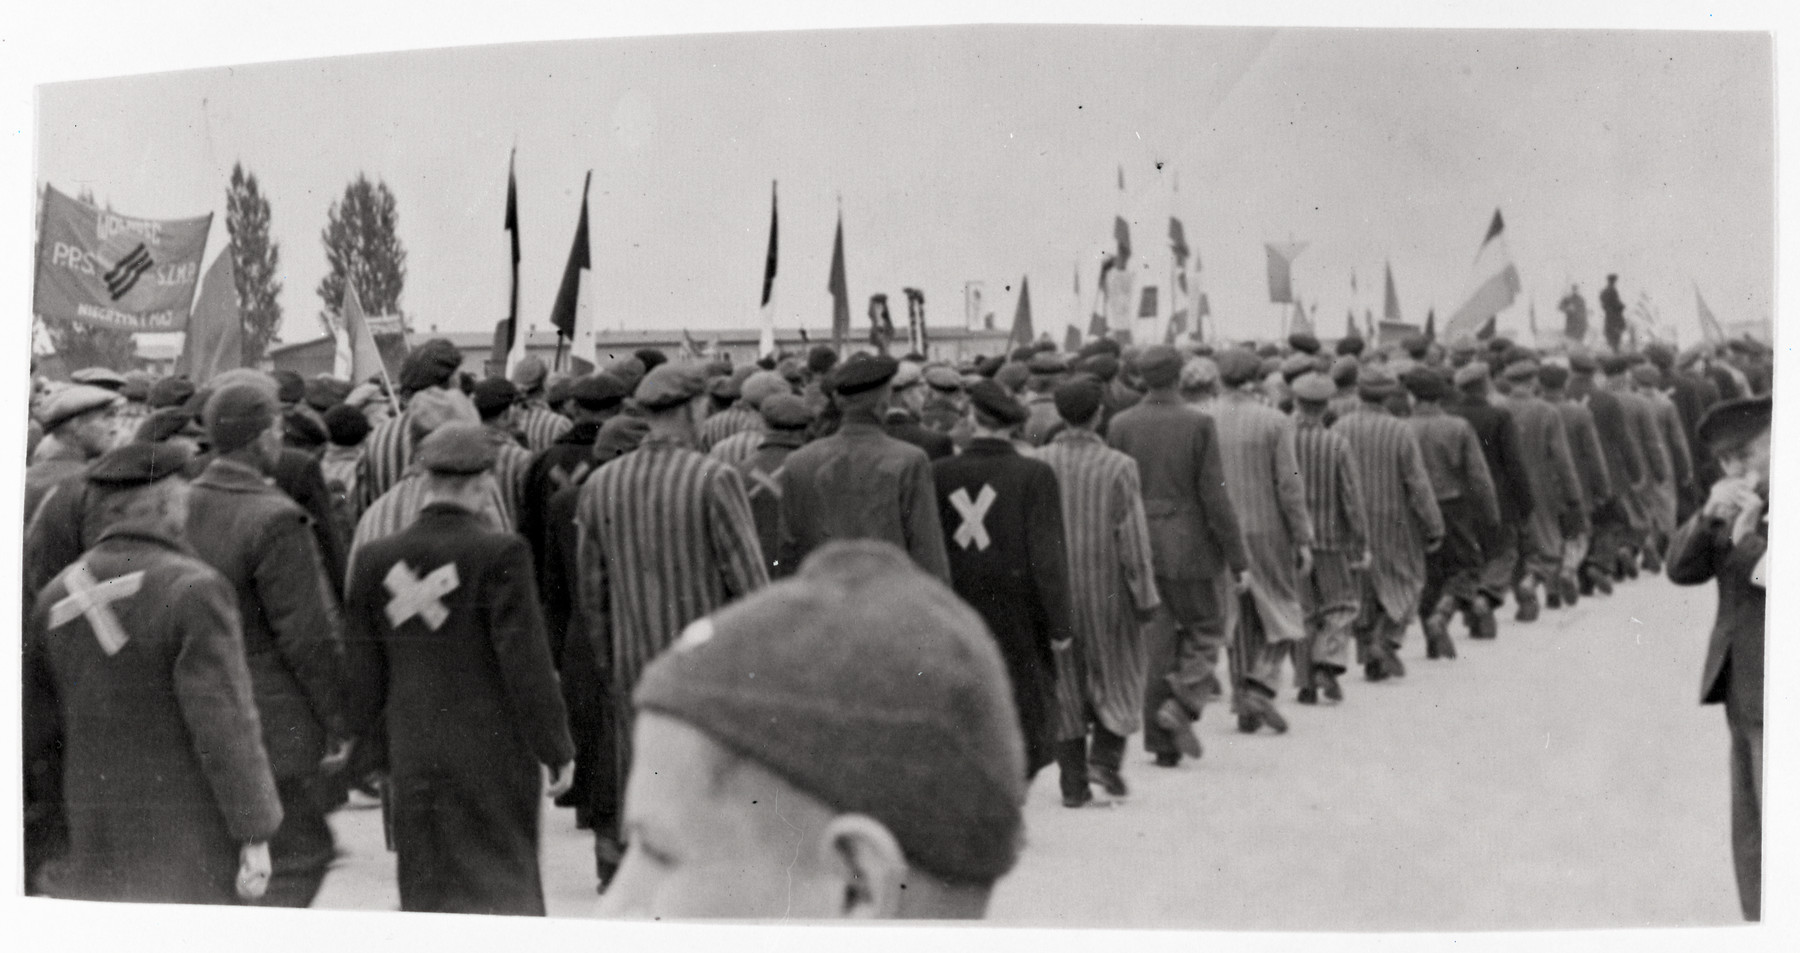 Prisoners of various nationalities march to a memorial service at the Dachau concentration camp shortly after liberation.